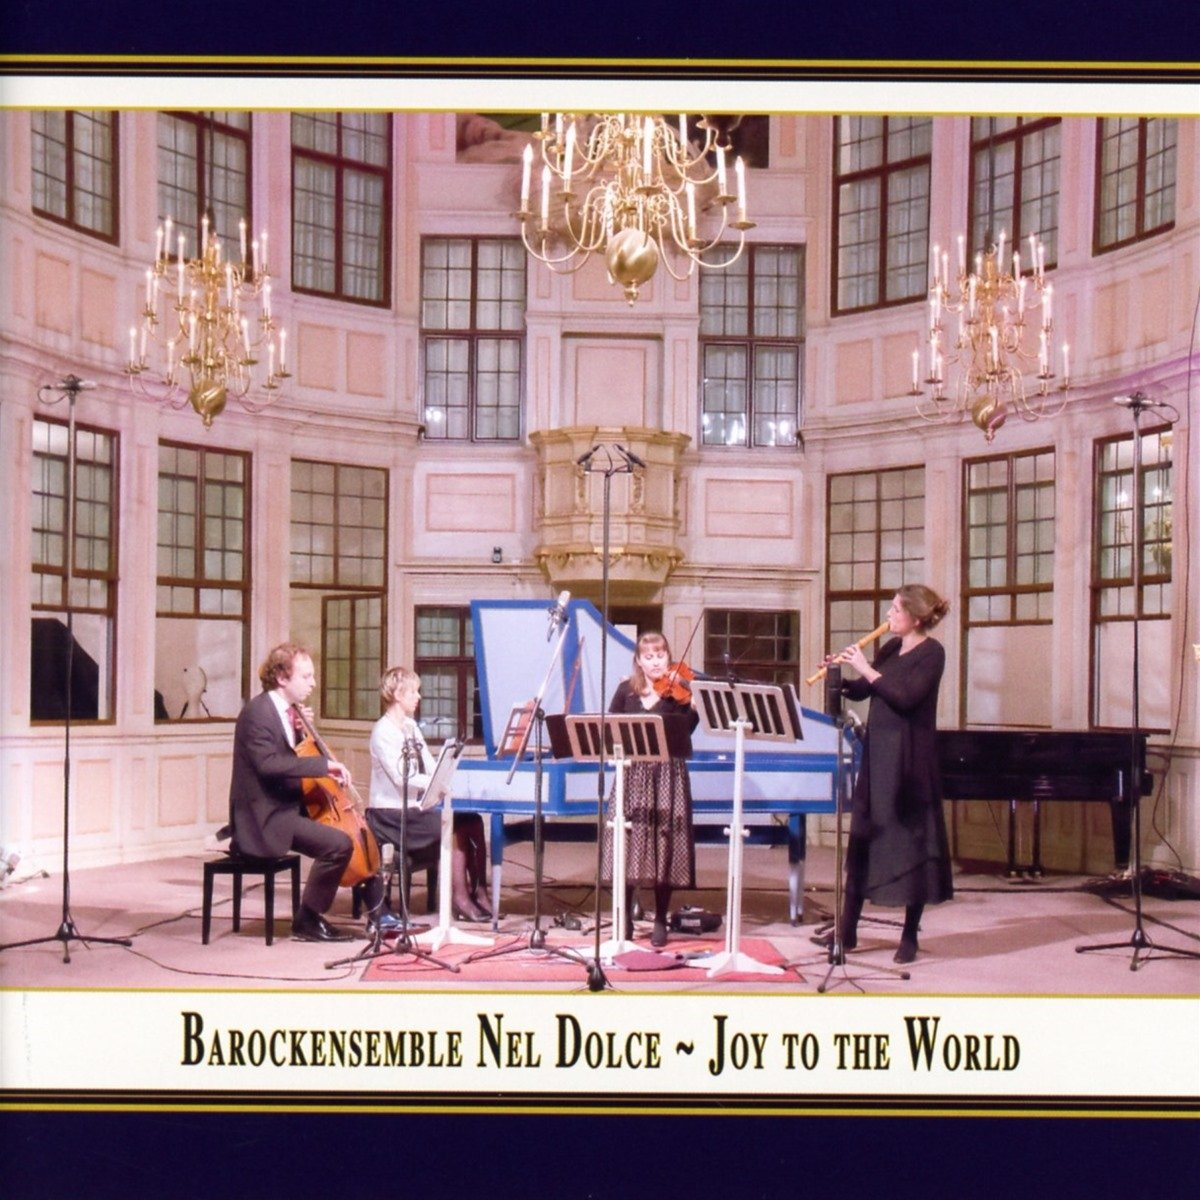 Nel Dolce: Royal Christmas - Joy to the World (Baroque Christmas at the English Court) [Live] by K&K